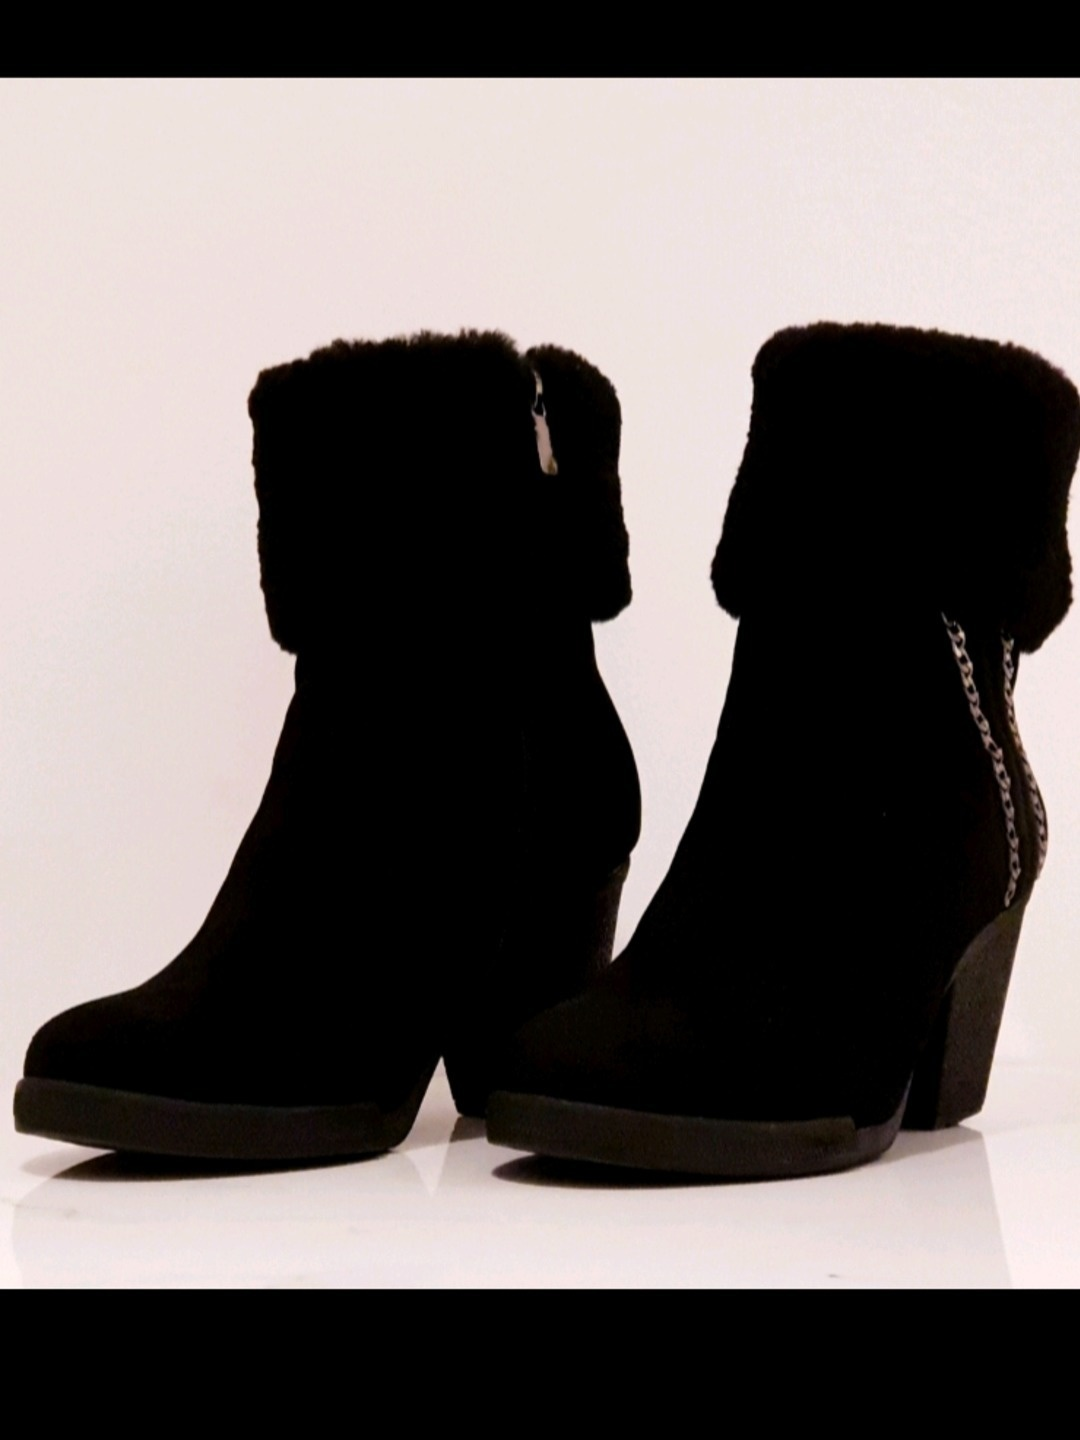 Women's boots - VERO CUOIO photo 2